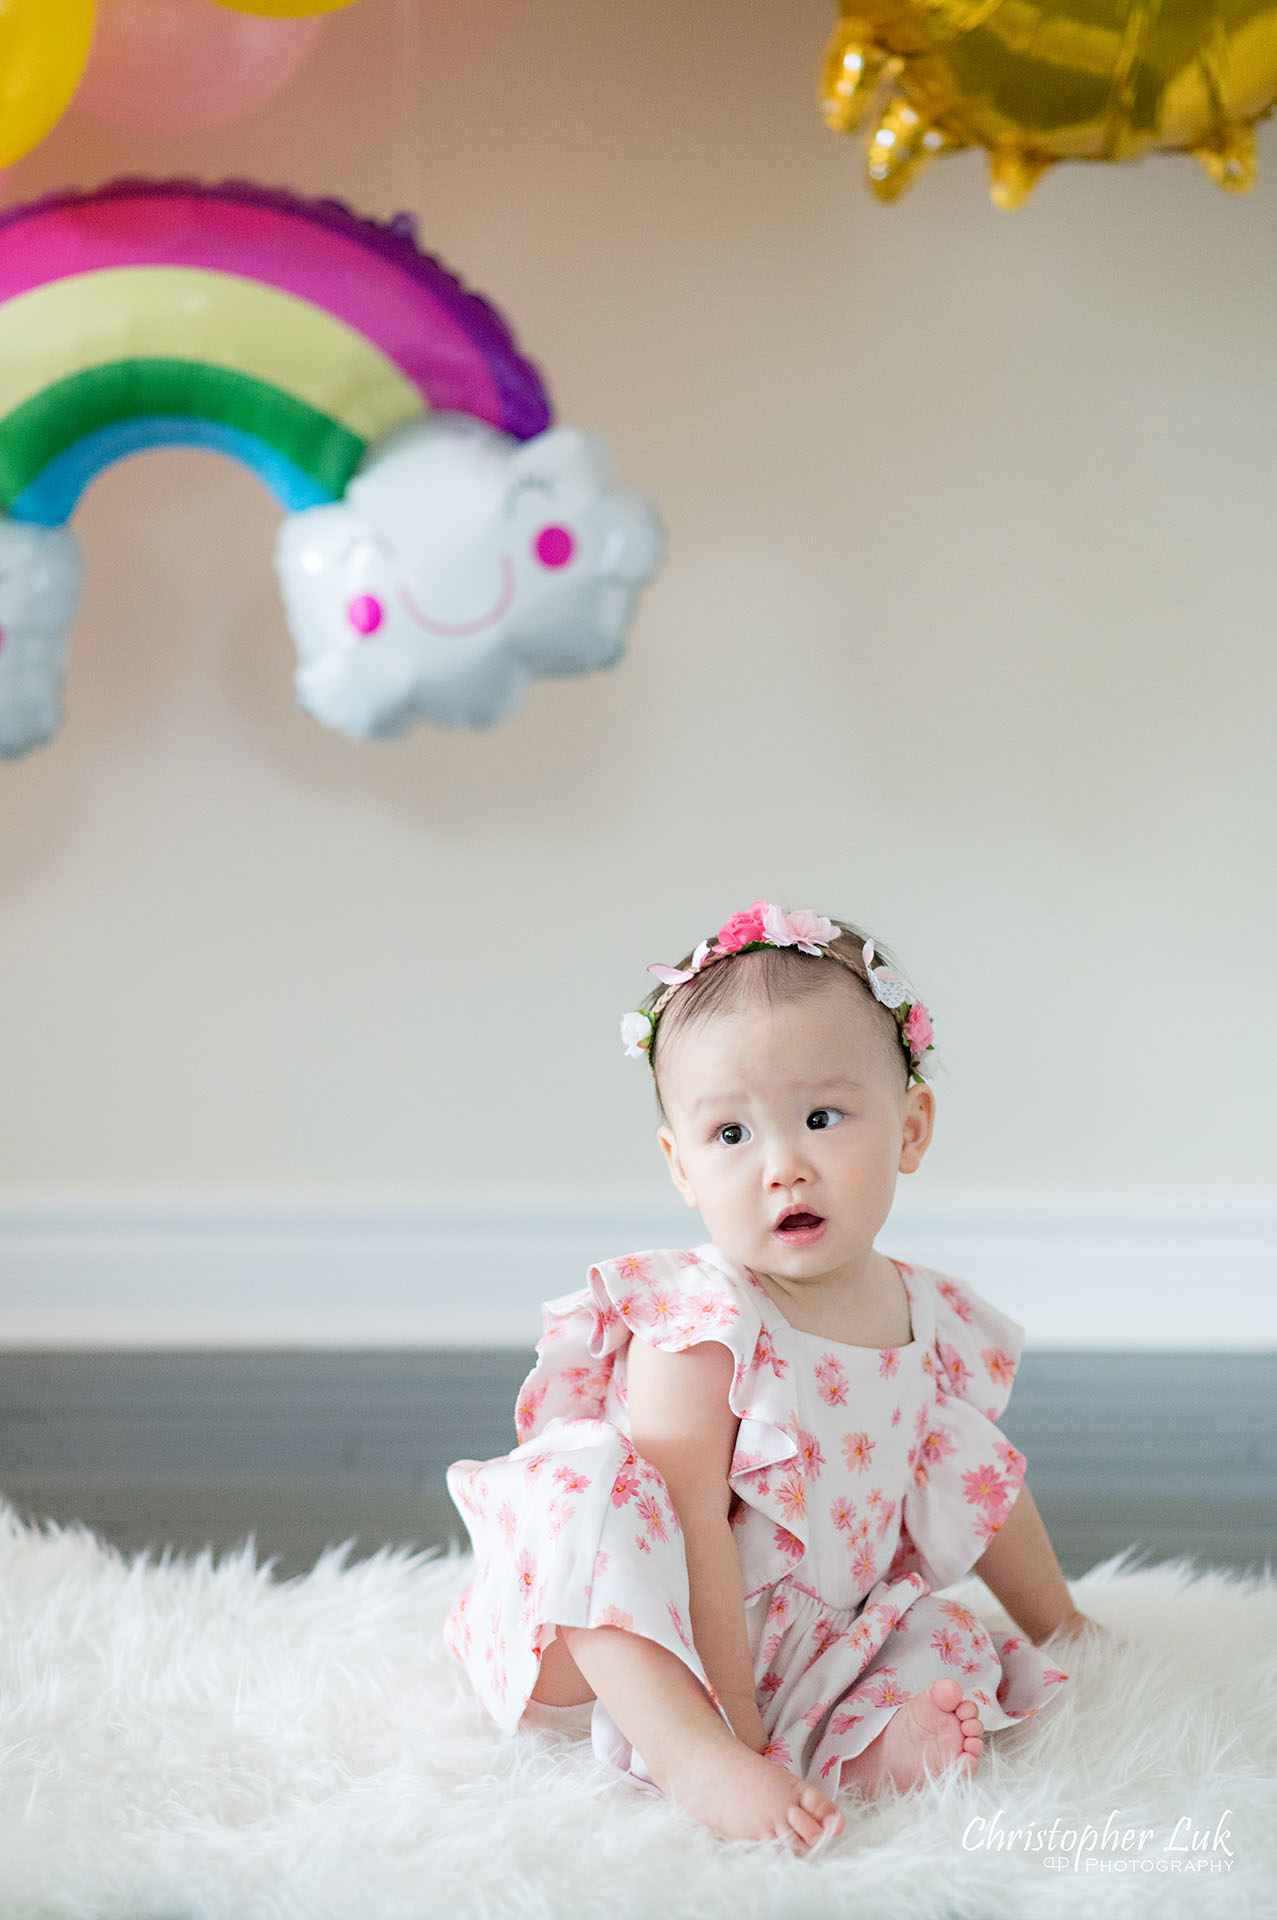 Christopher Luk Toronto Markham Family Photographer Baby Girl First Birthday Balloon Arch Rainbow Pink Natural Candid Photojournalistic